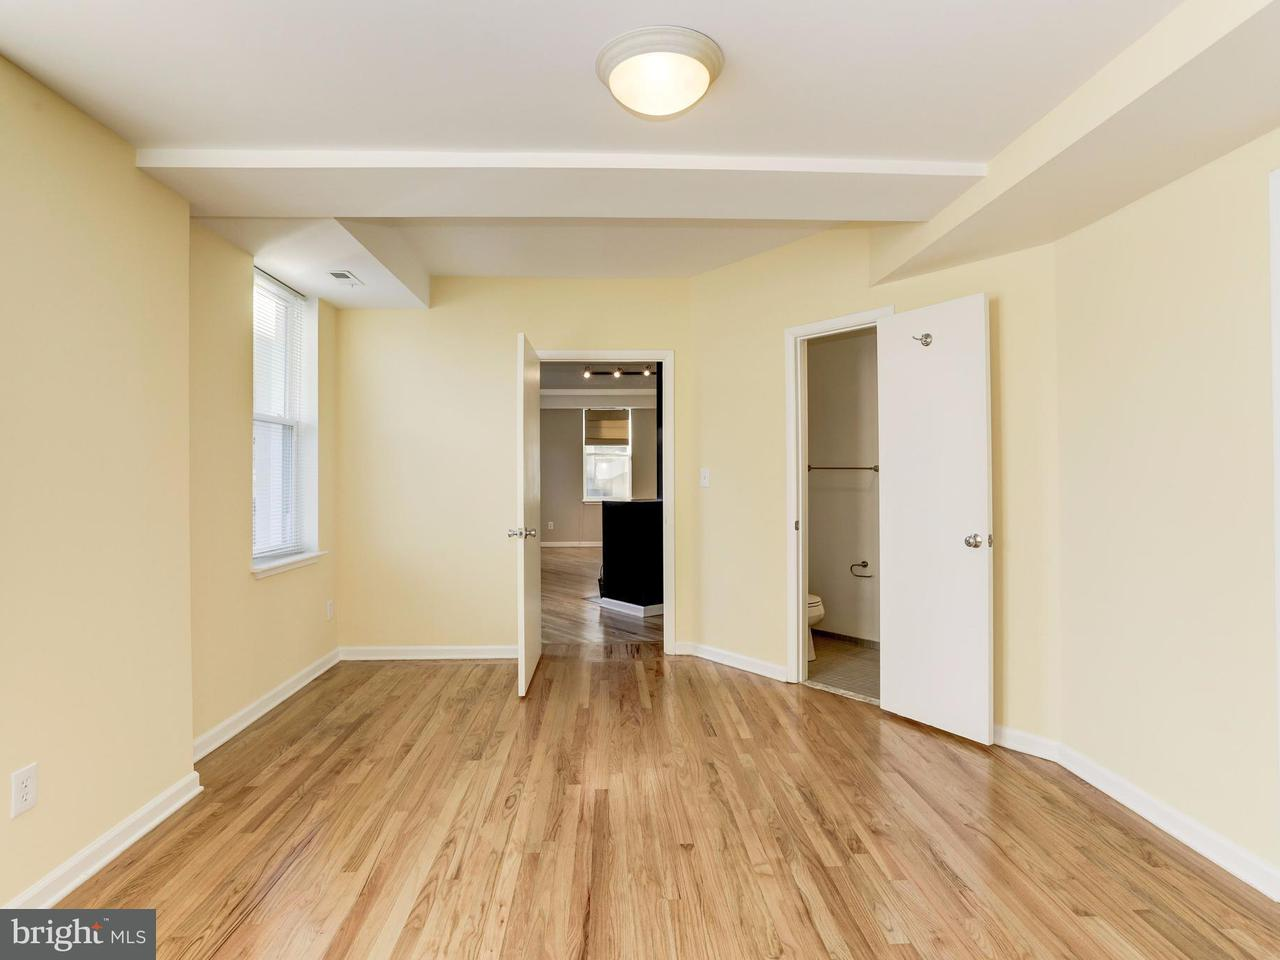 Additional photo for property listing at 1745 Kalorama Rd Nw #201 1745 Kalorama Rd Nw #201 Washington, Distrito De Columbia 20009 Estados Unidos